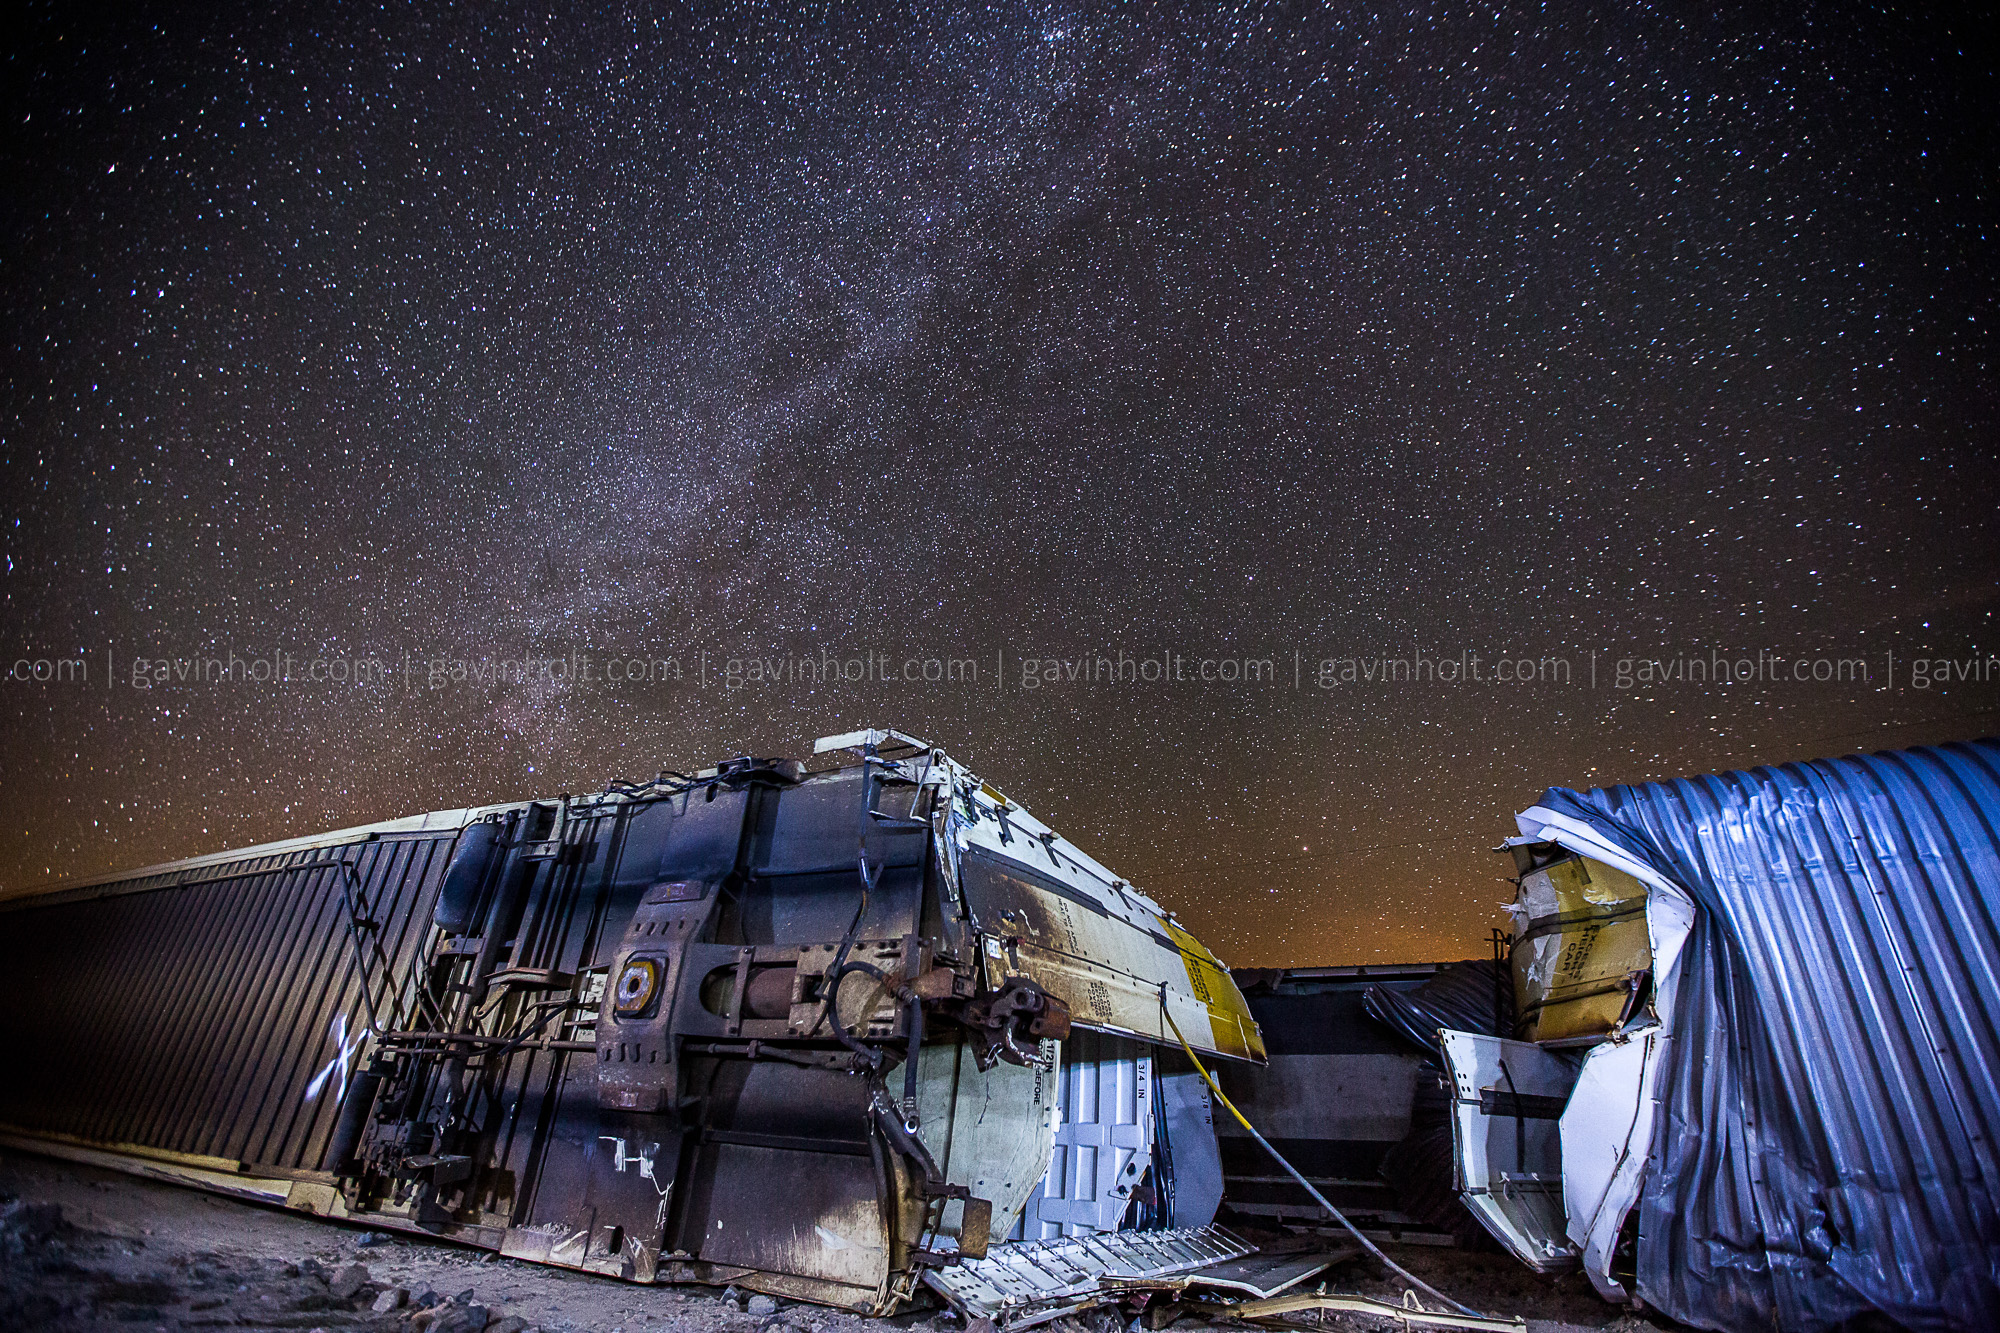 Derailed Train under the Milky Way